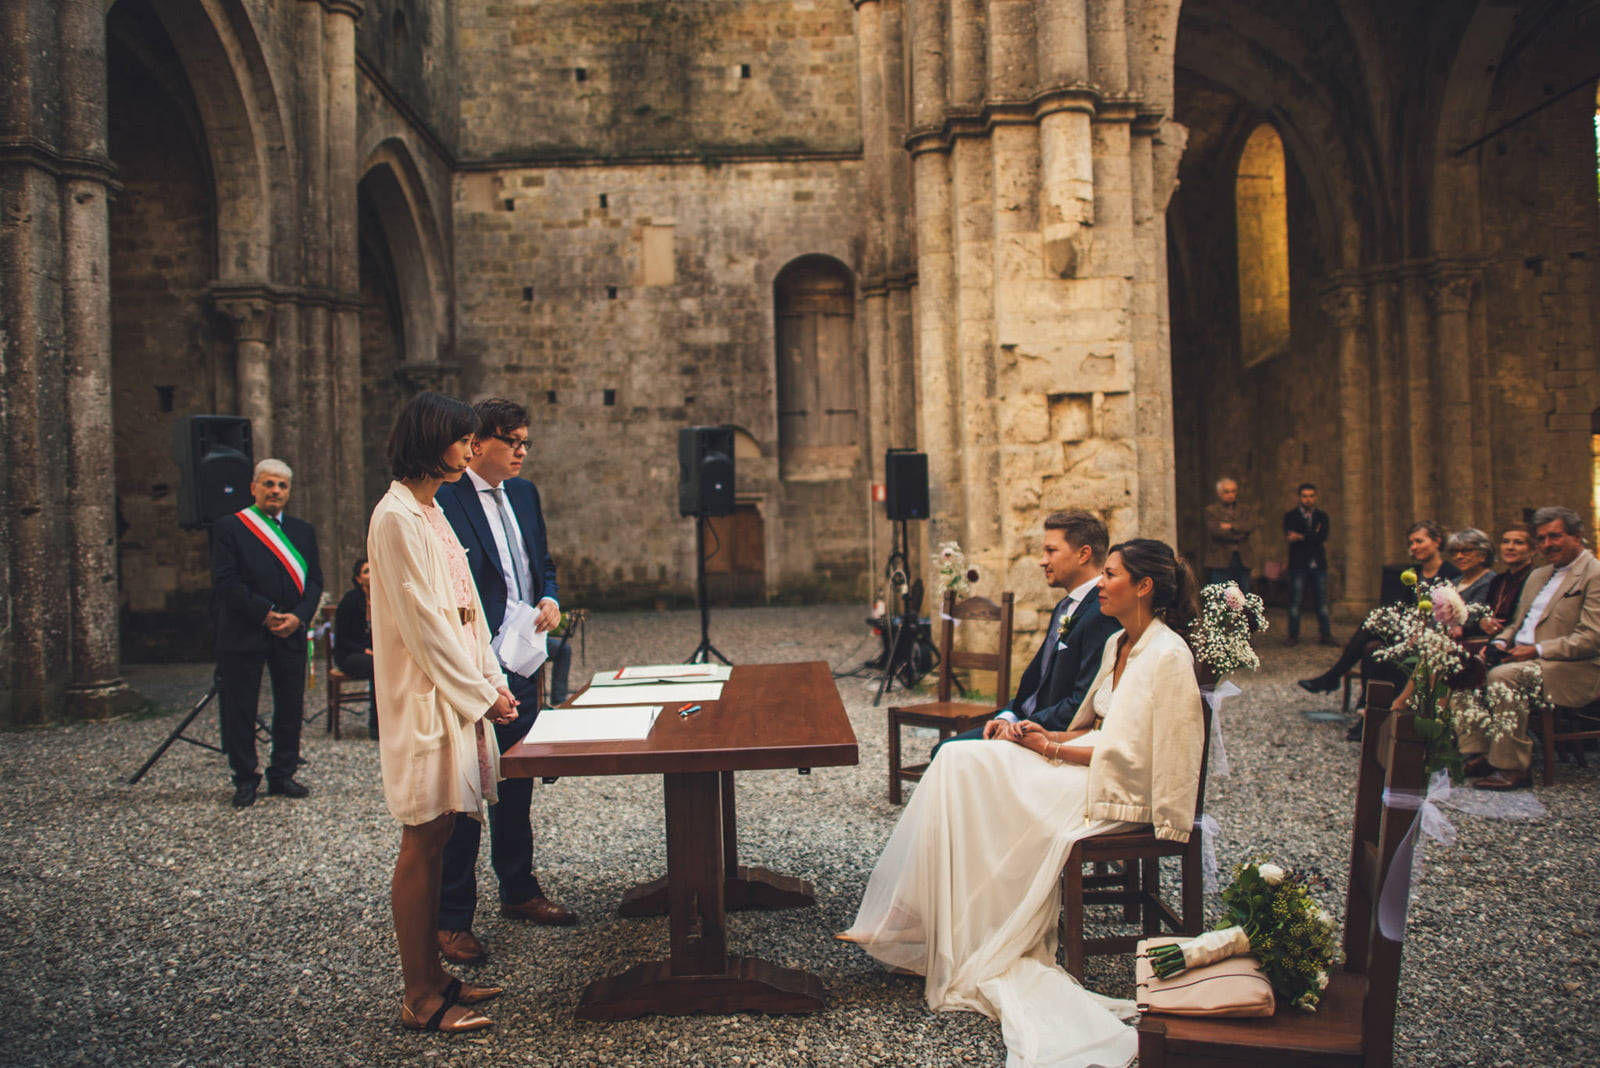 048-wedding-tuscany-san-galgano-siena-photographer